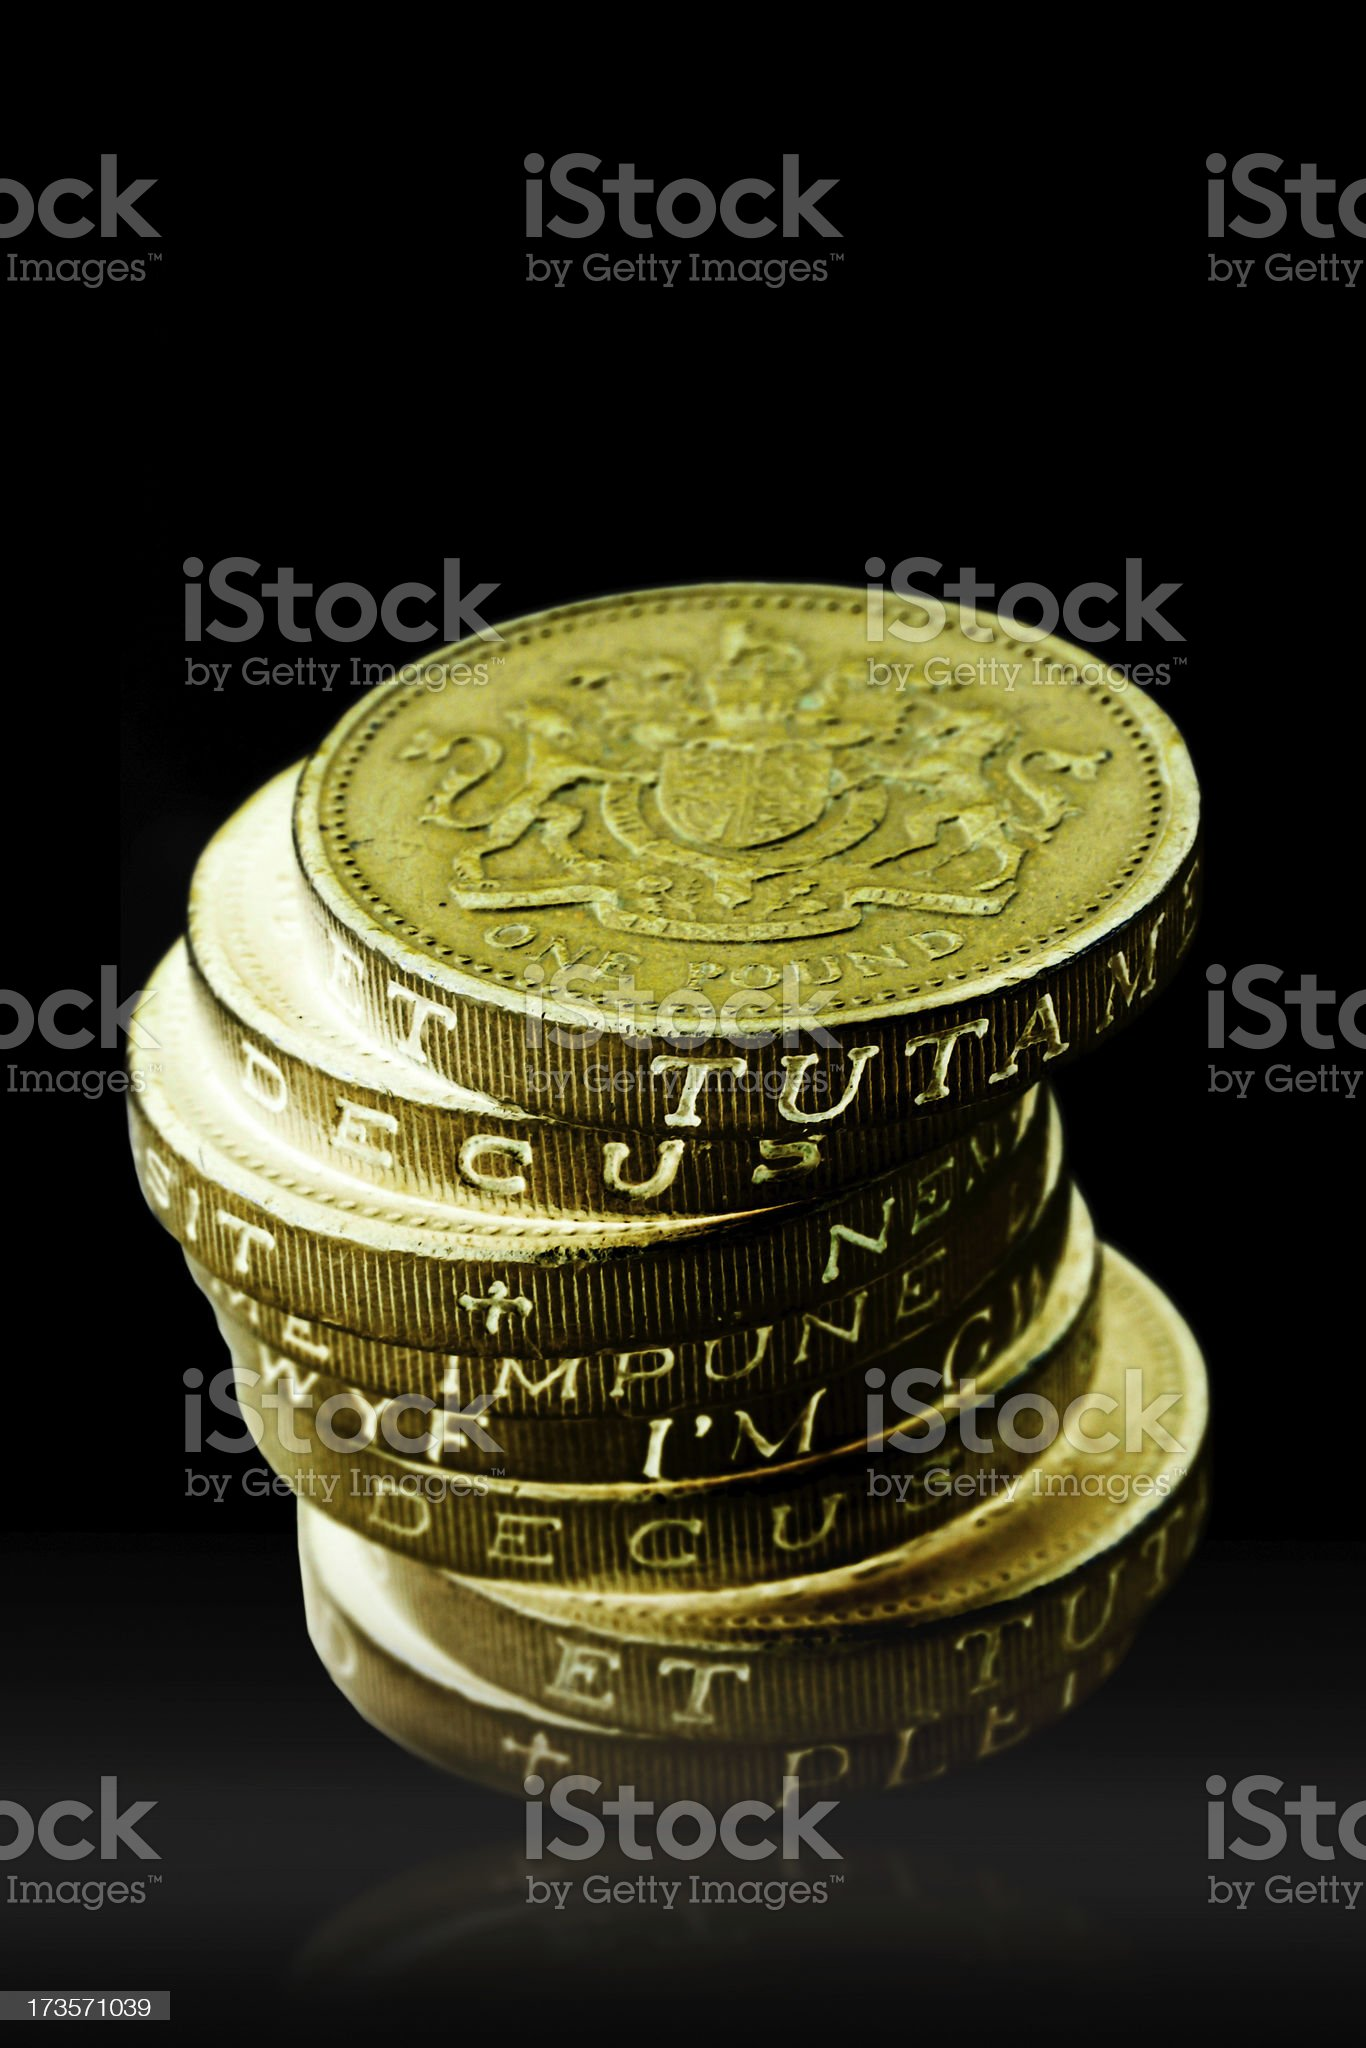 One Pound Coins royalty-free stock photo